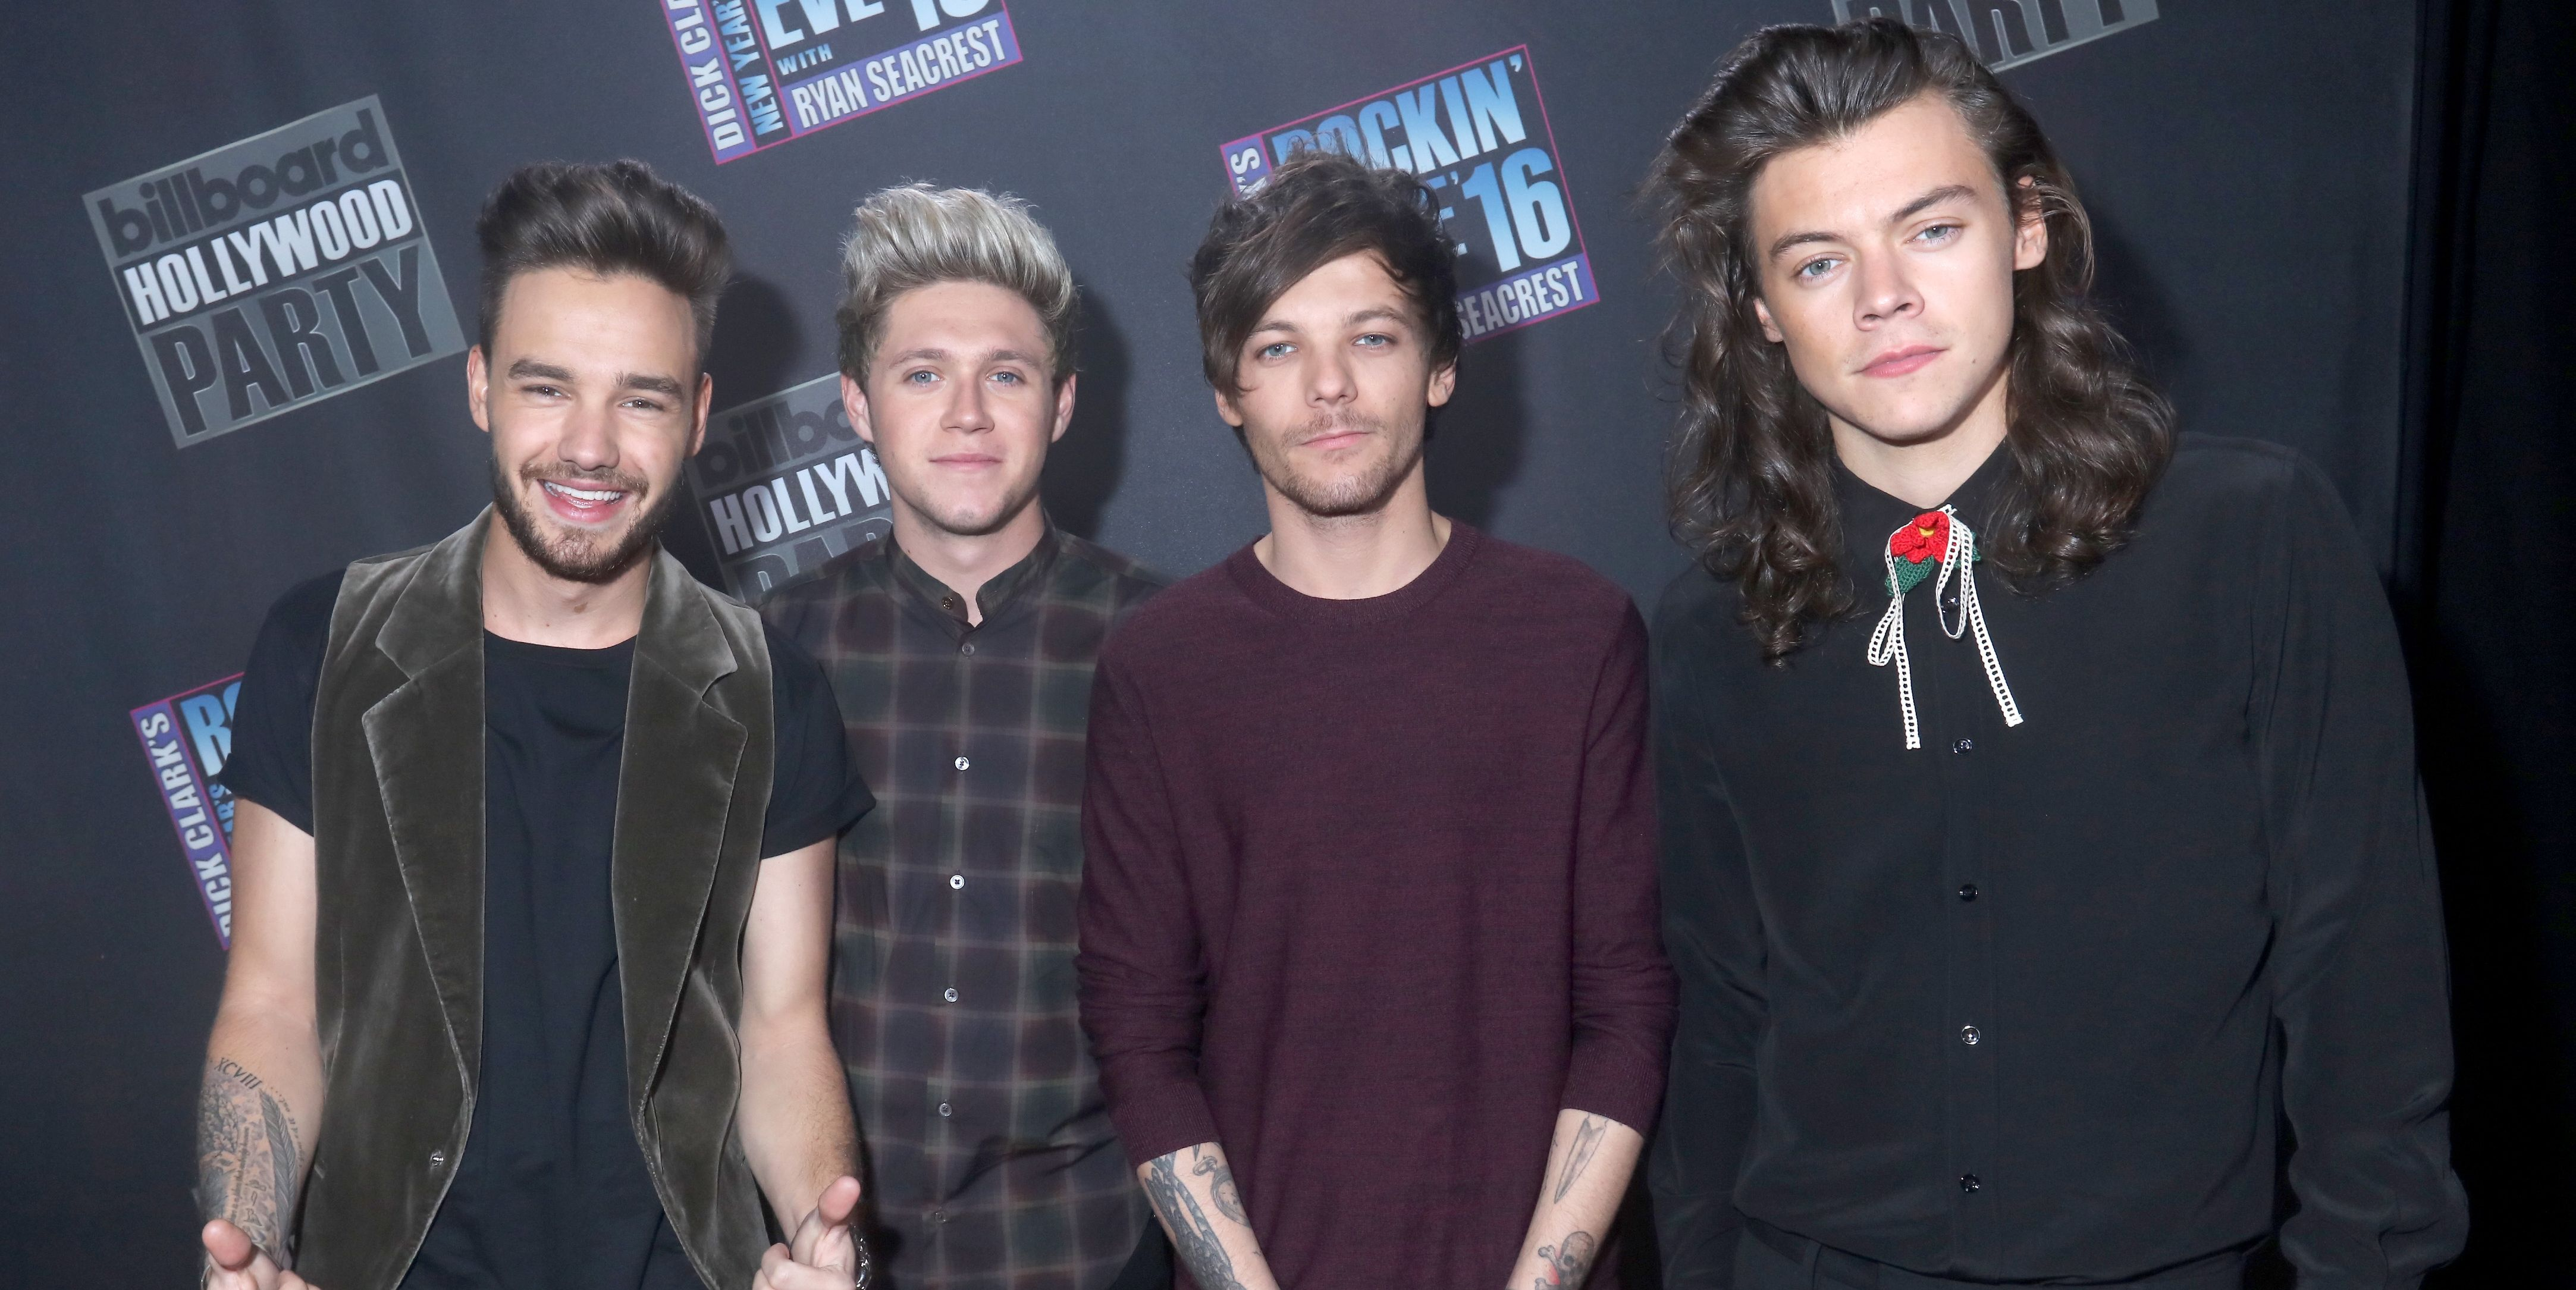 One Direction Might Reunite for the Holidays, But It's Not What You Think